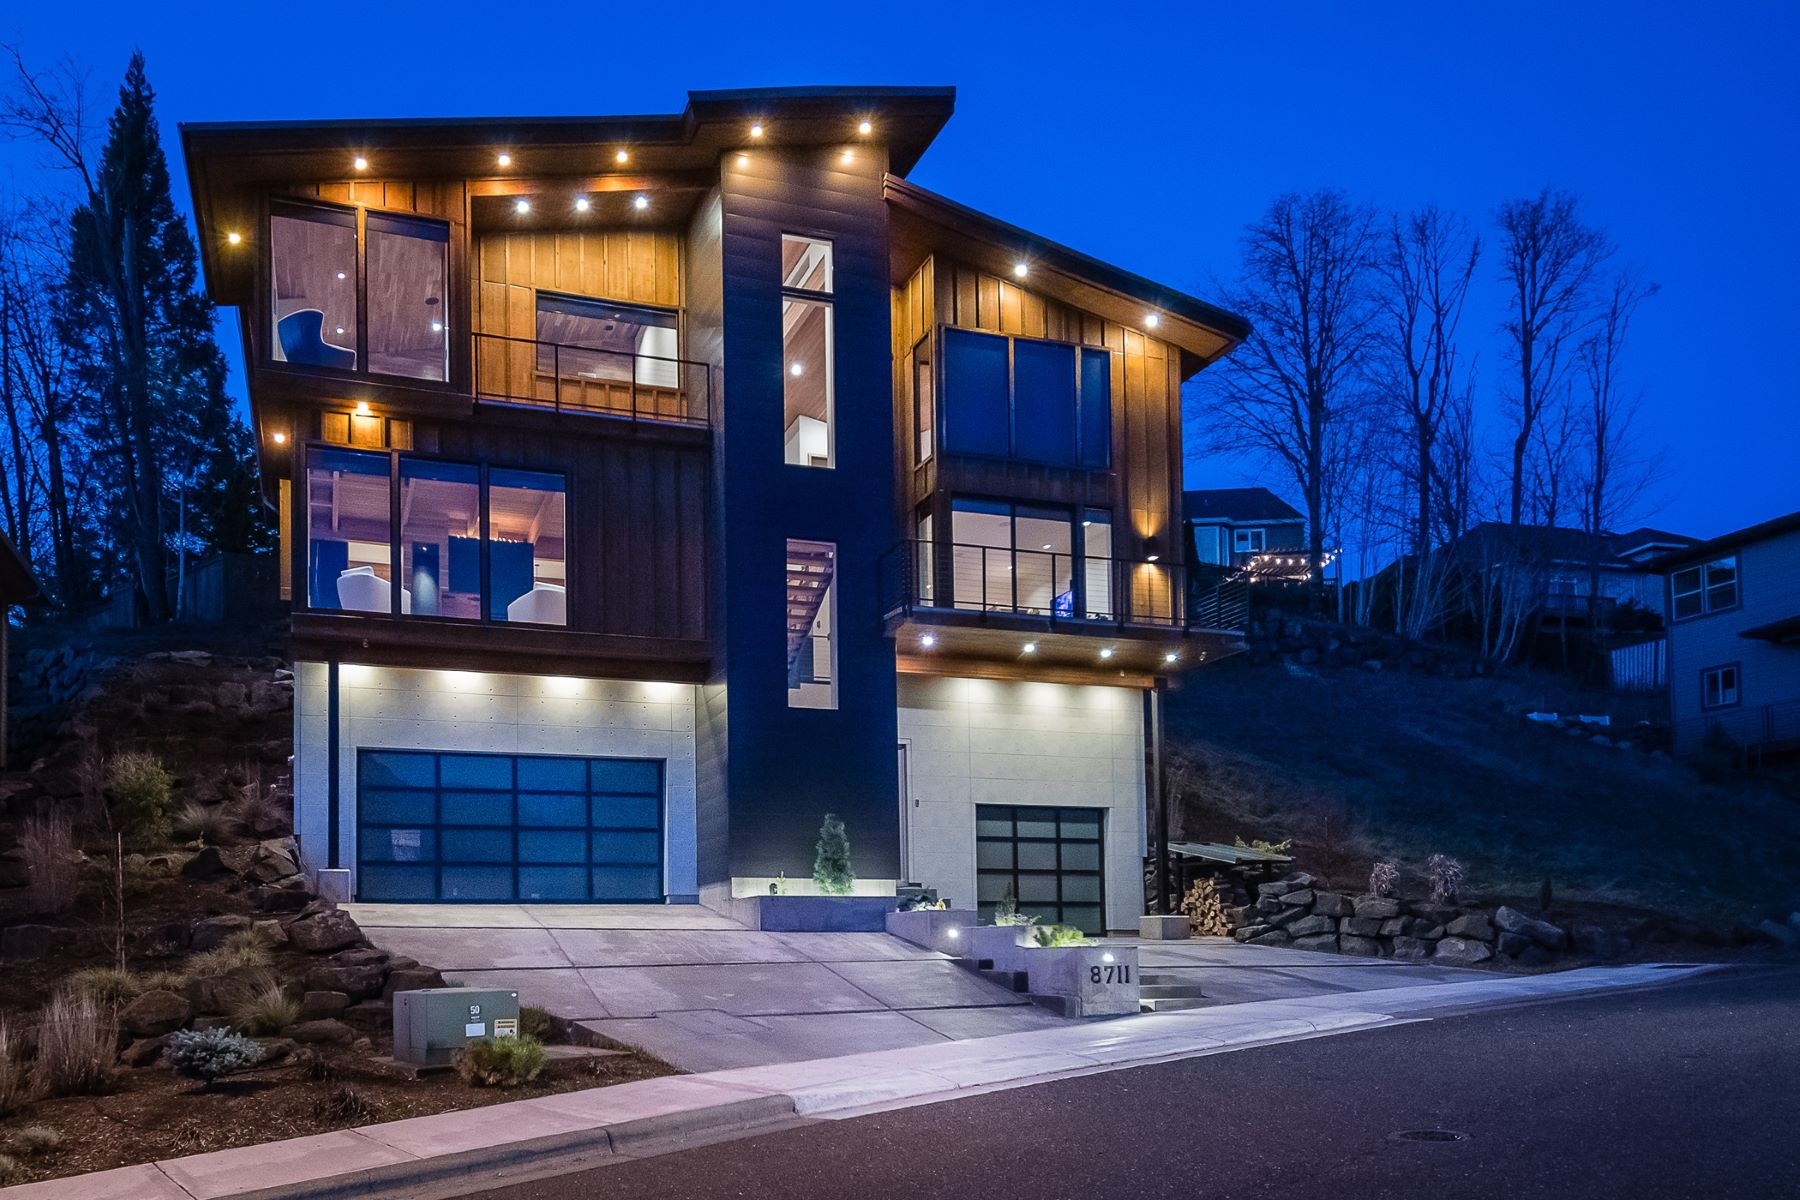 Single Family Homes for Active at Custom Builders Contemporary 8711 NW SAVOY LN Portland, Oregon 97229 United States